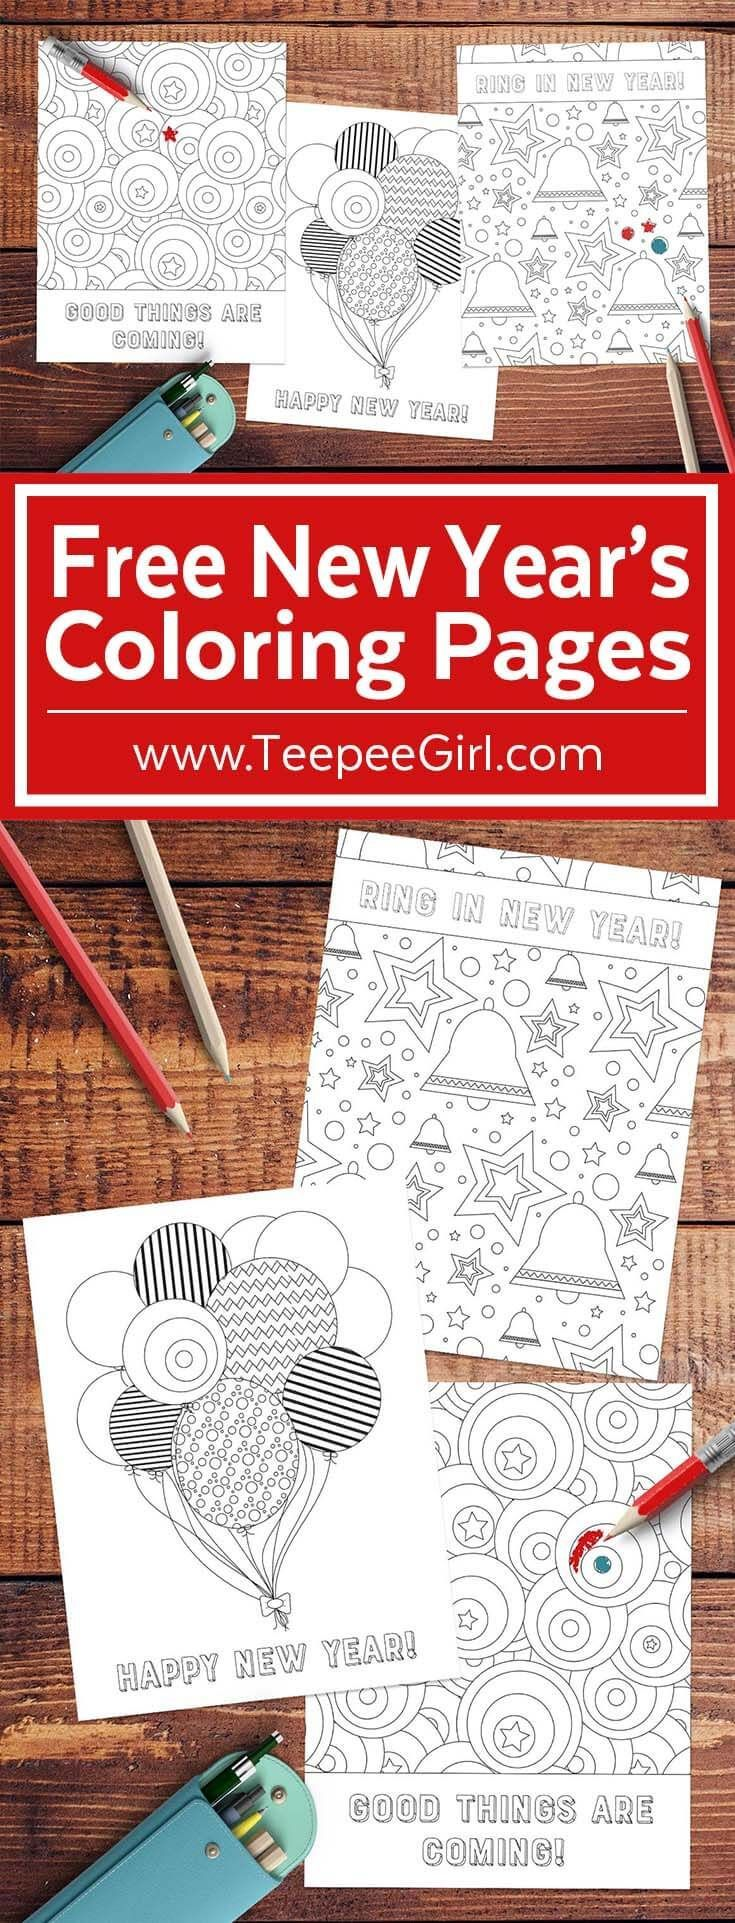 Free New Year Coloring Pages | Churches, Plays and Free